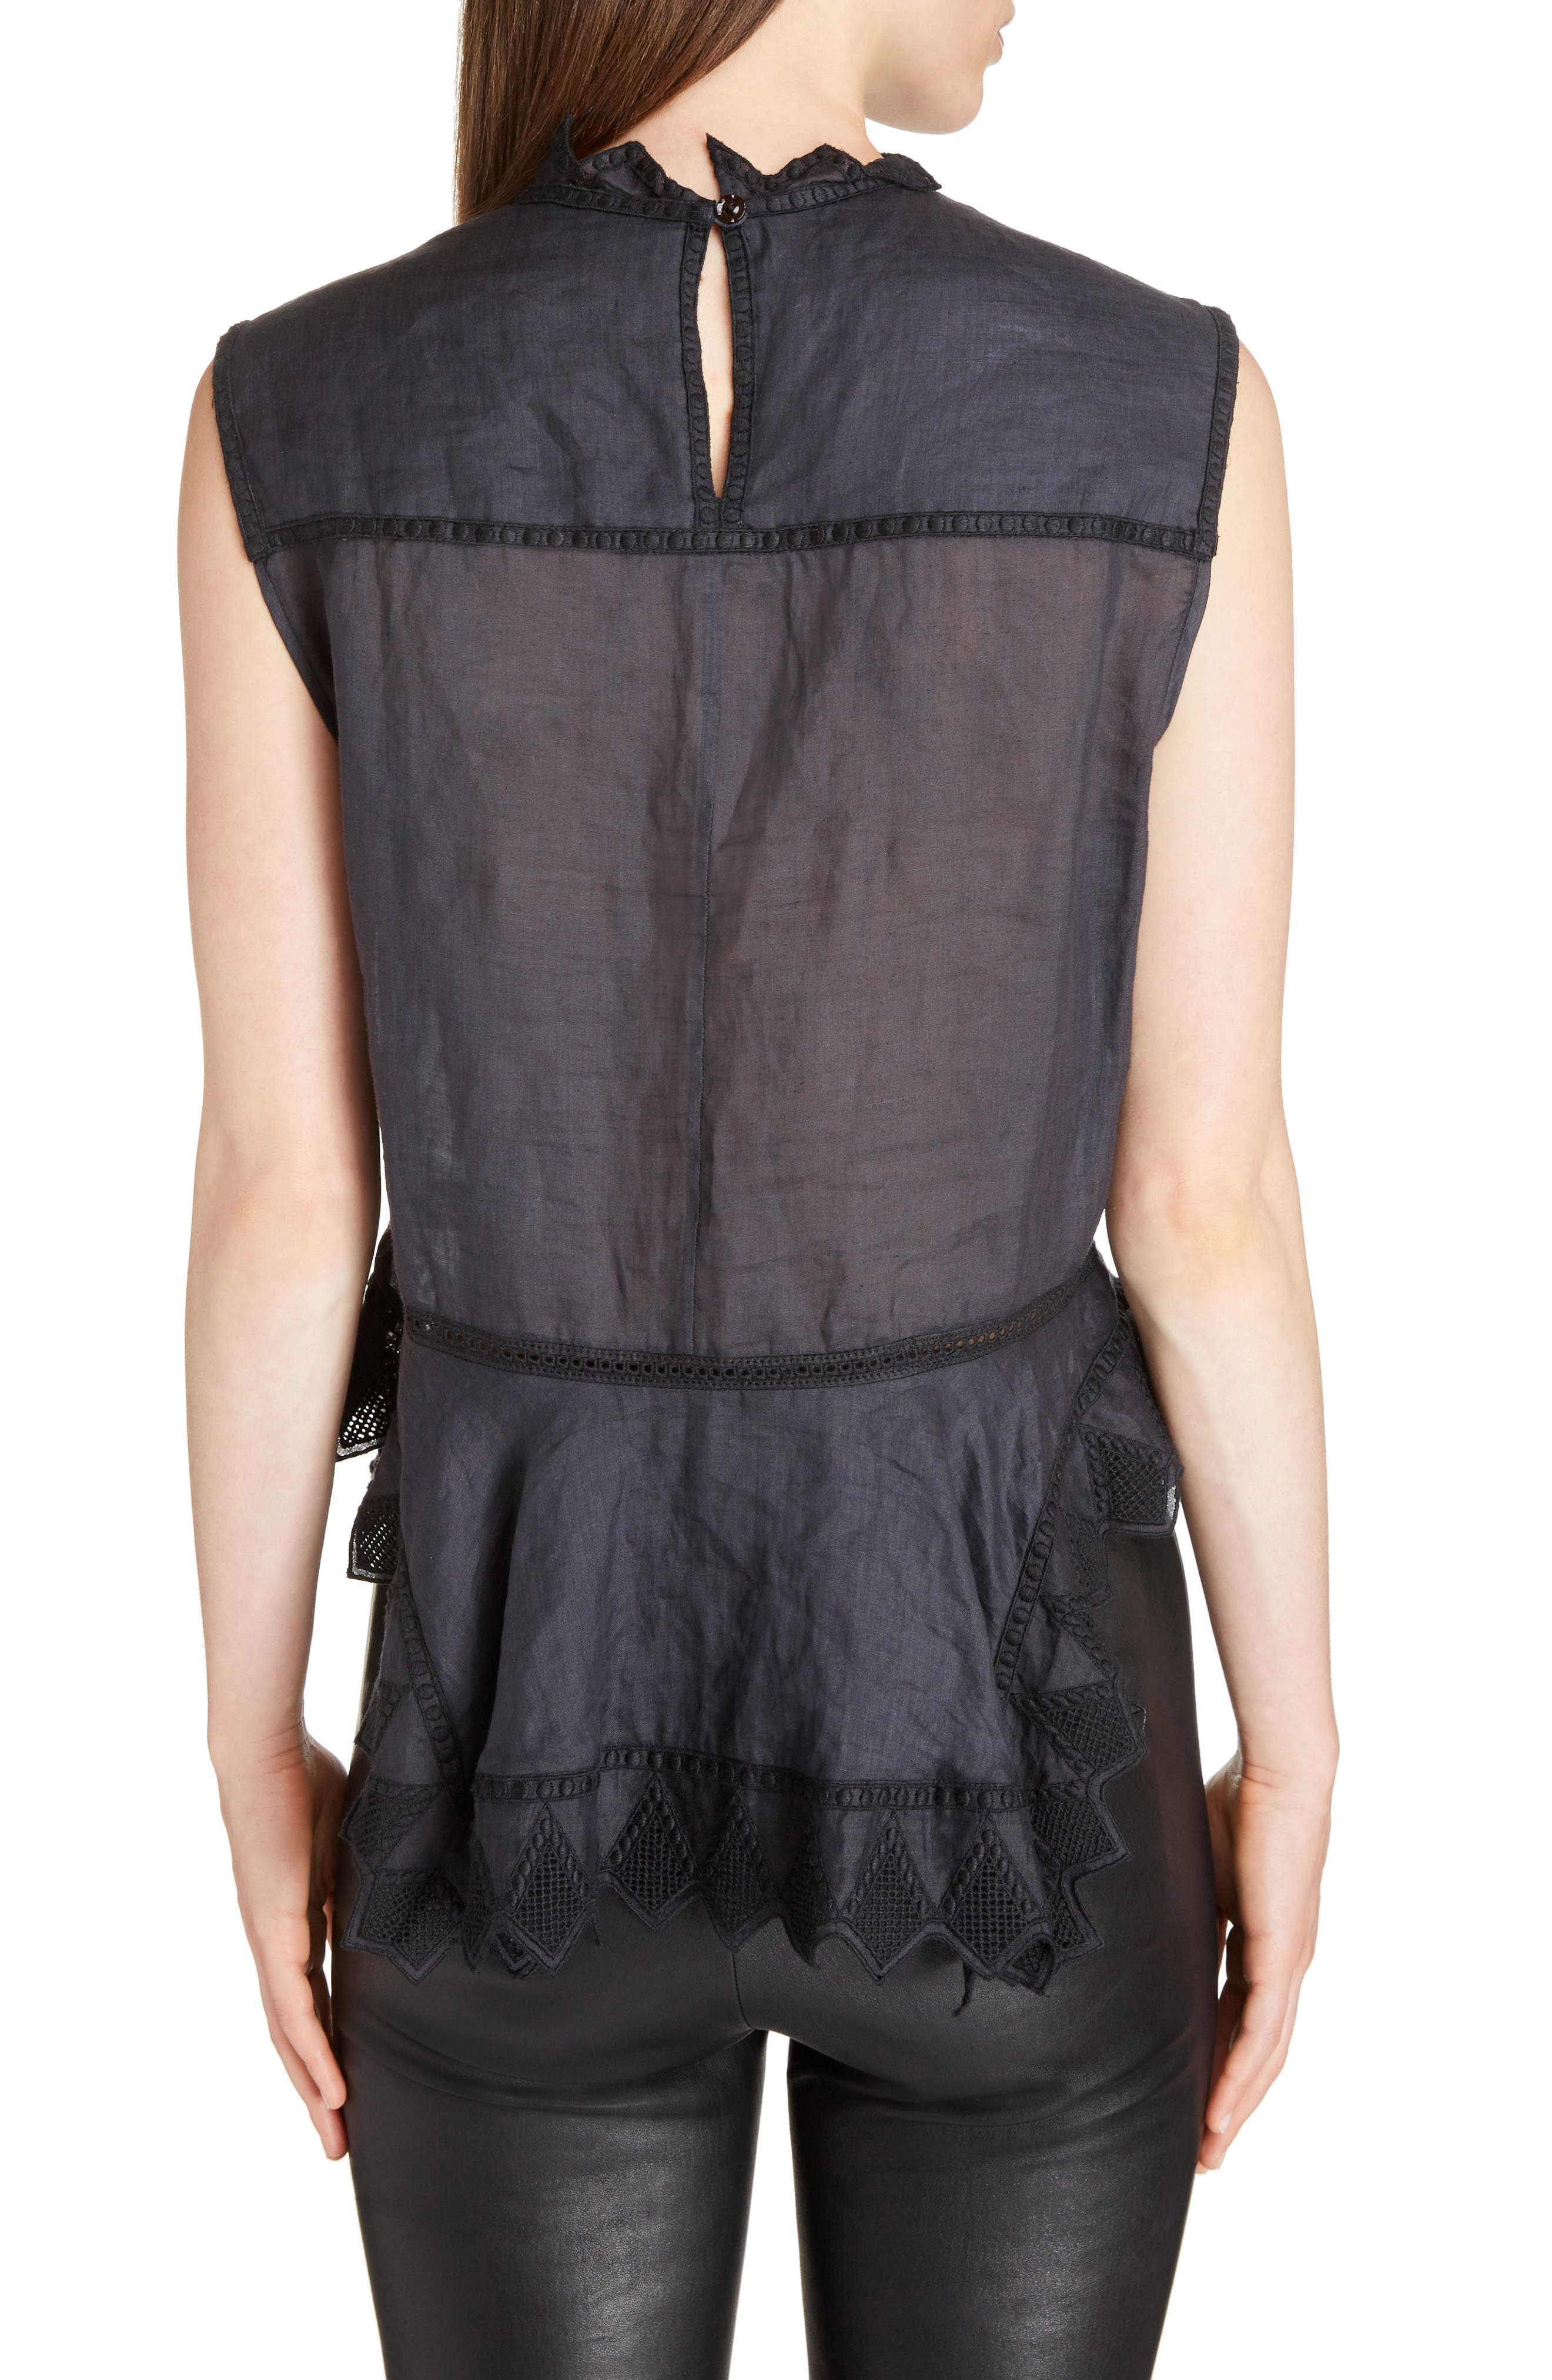 Nust Embroidered Top,                             Alternate thumbnail 2, color,                             Black